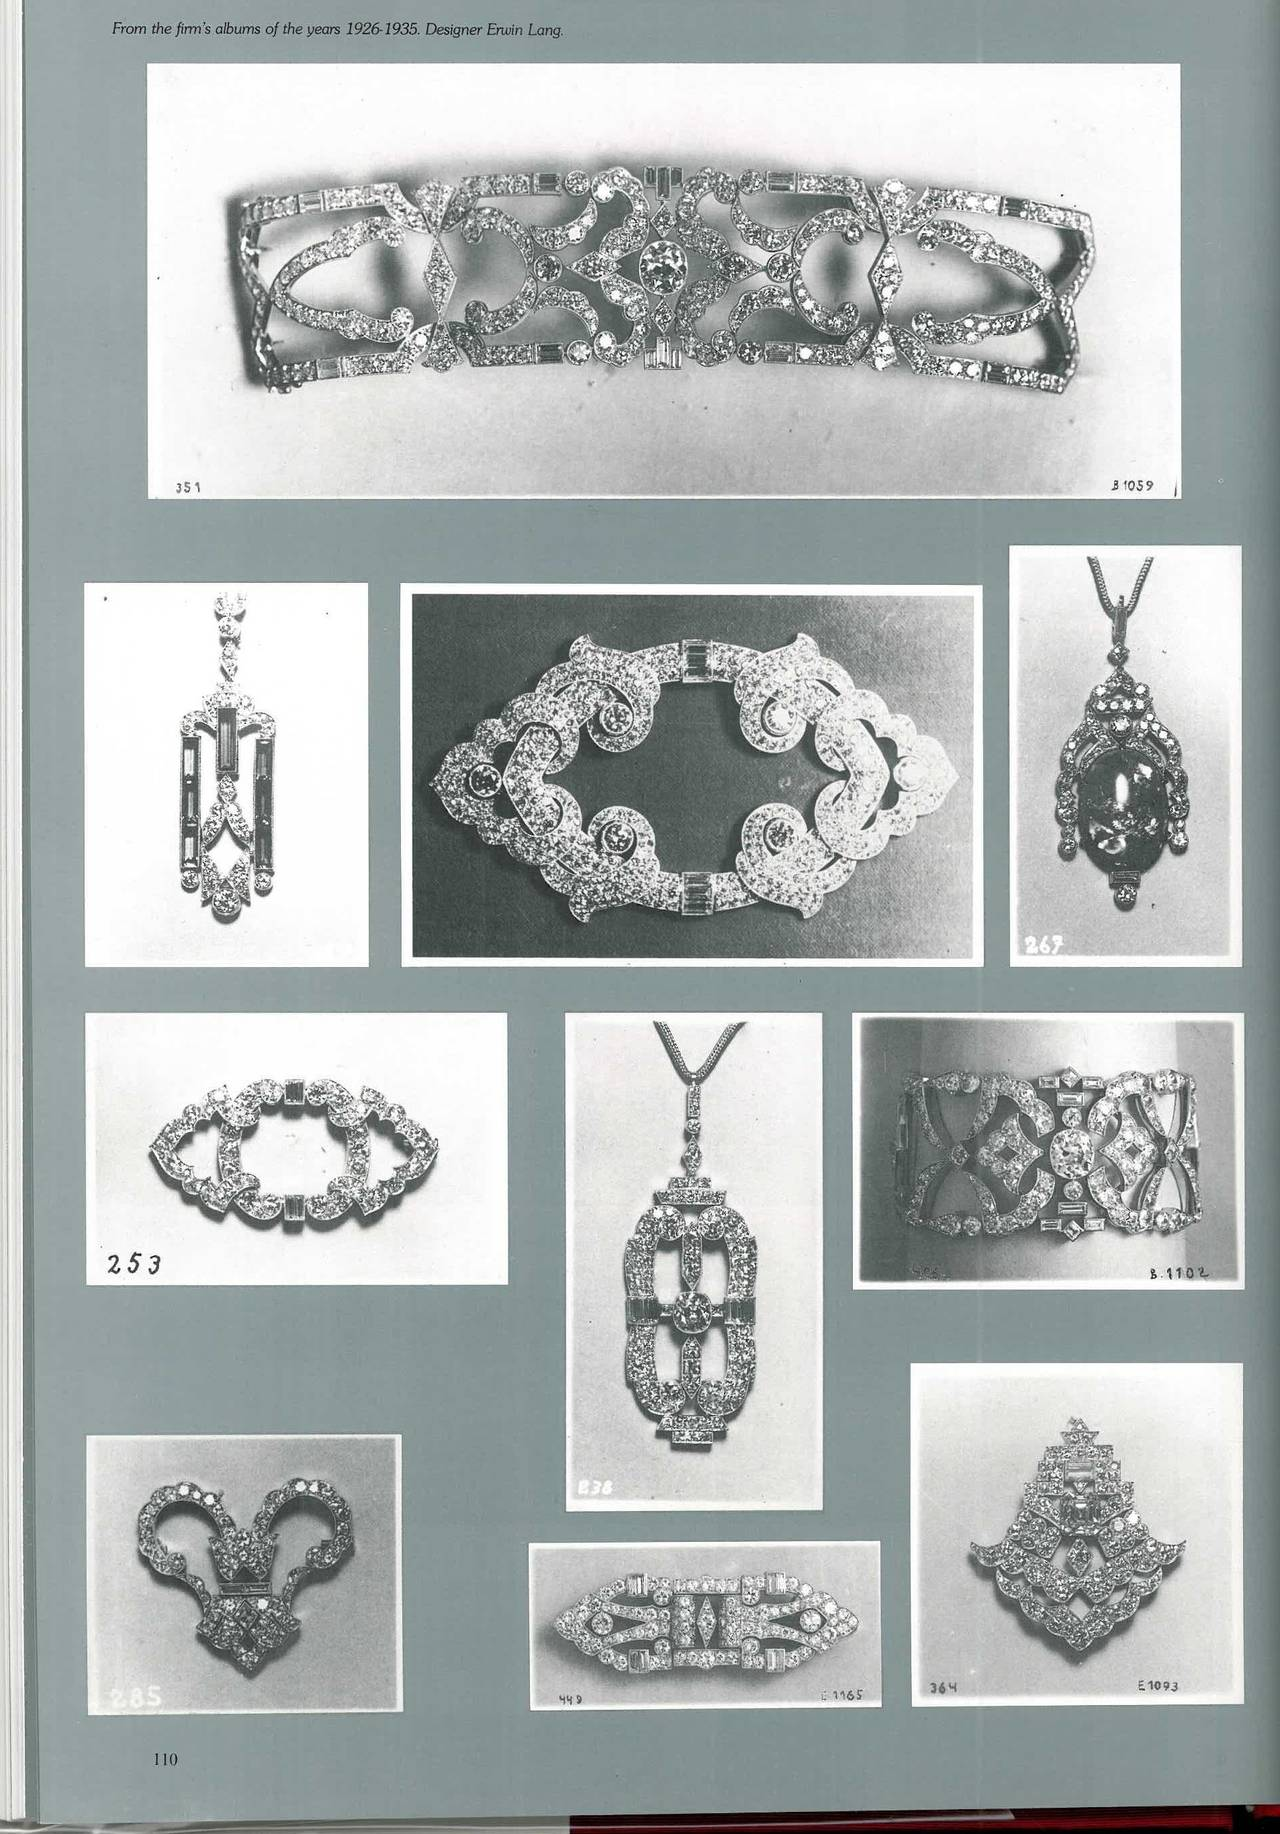 Women's or Men's Book of Kochert - Imperial Jewellers in Vienna - Jewellery Designs 1810-1940 For Sale